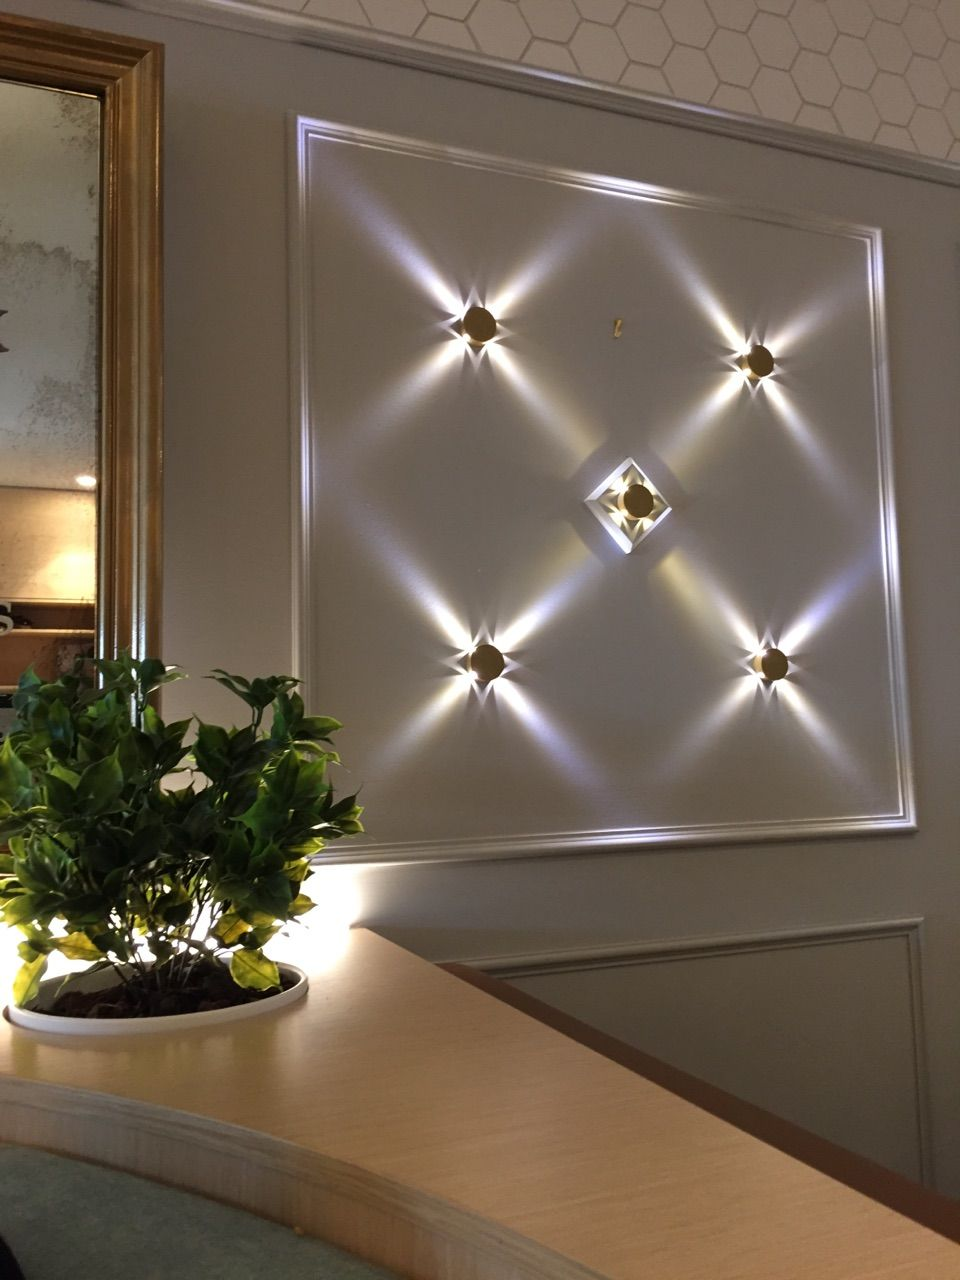 New Diamond Lighting Design Wall Lighting Design Home Lighting